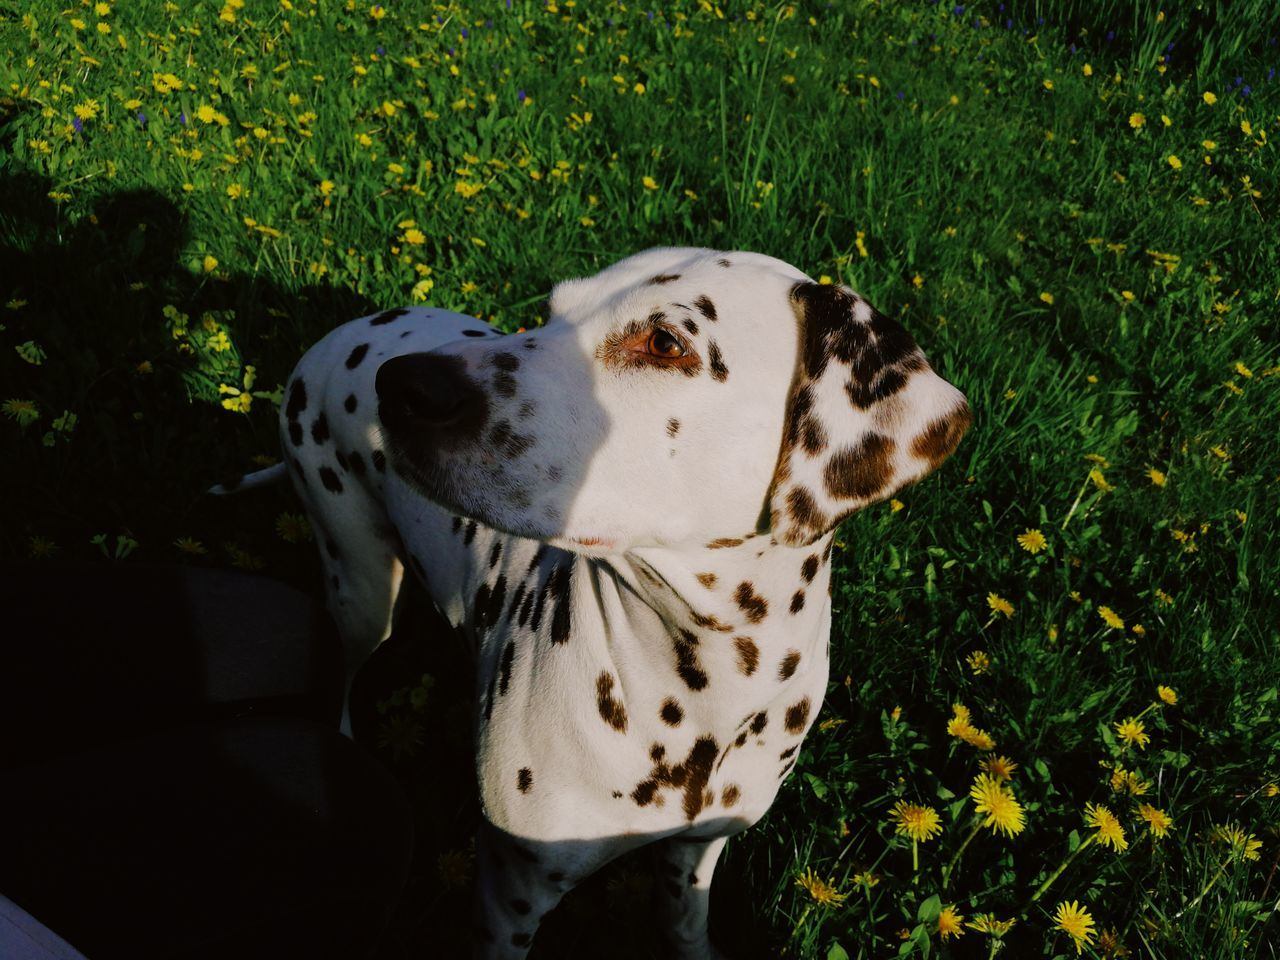 Close-Up Of Dog Standing Amidst Plants On Field